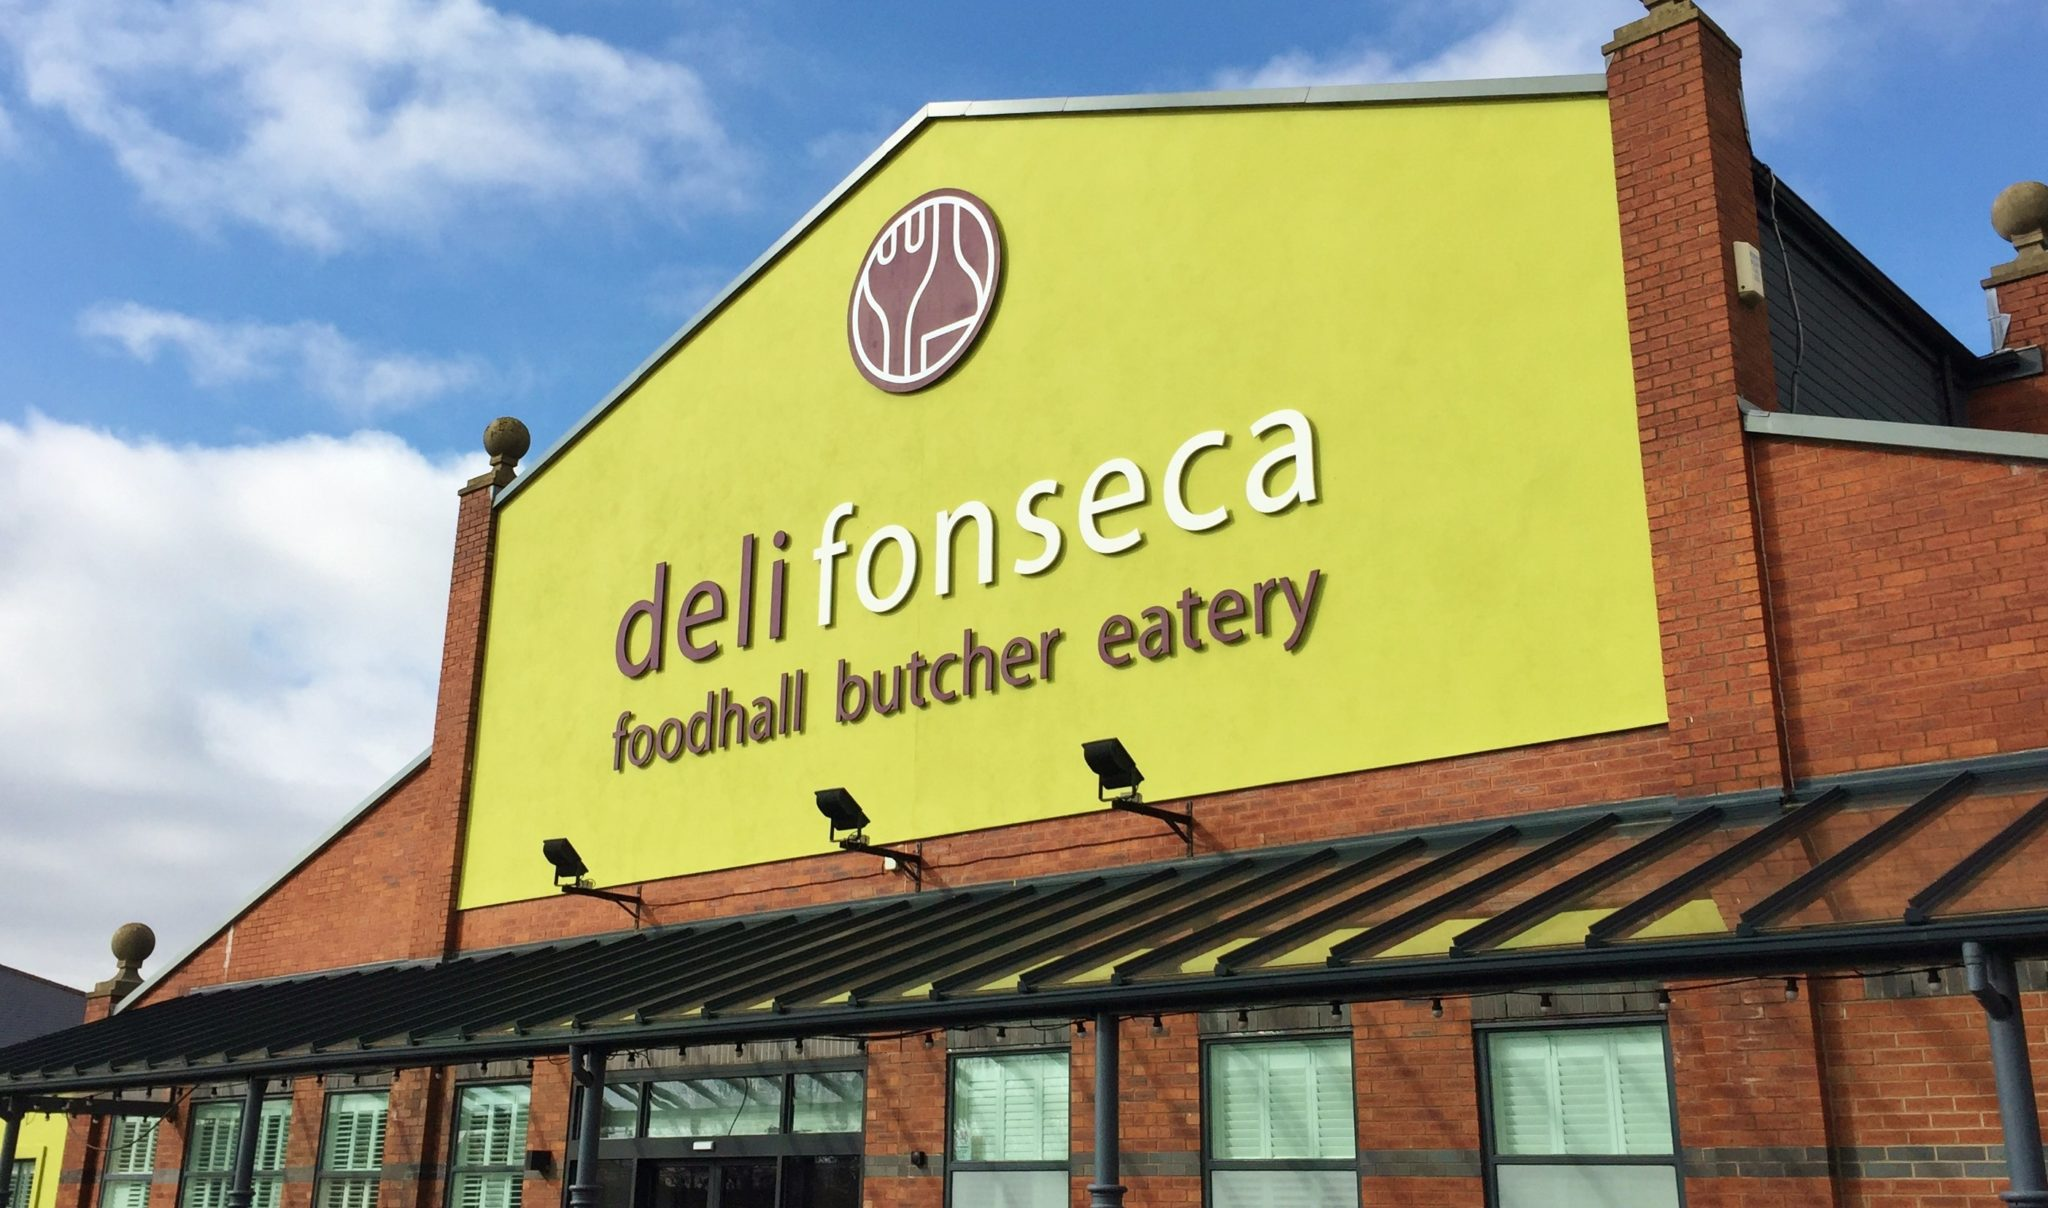 Enjoy Celebrity Radio's Review Delifonseca Liverpool…. Delifonseca is a wonderful deli with an elegant restaurant in the Baltic Triangle of Liverpool just moments from The Arena […]